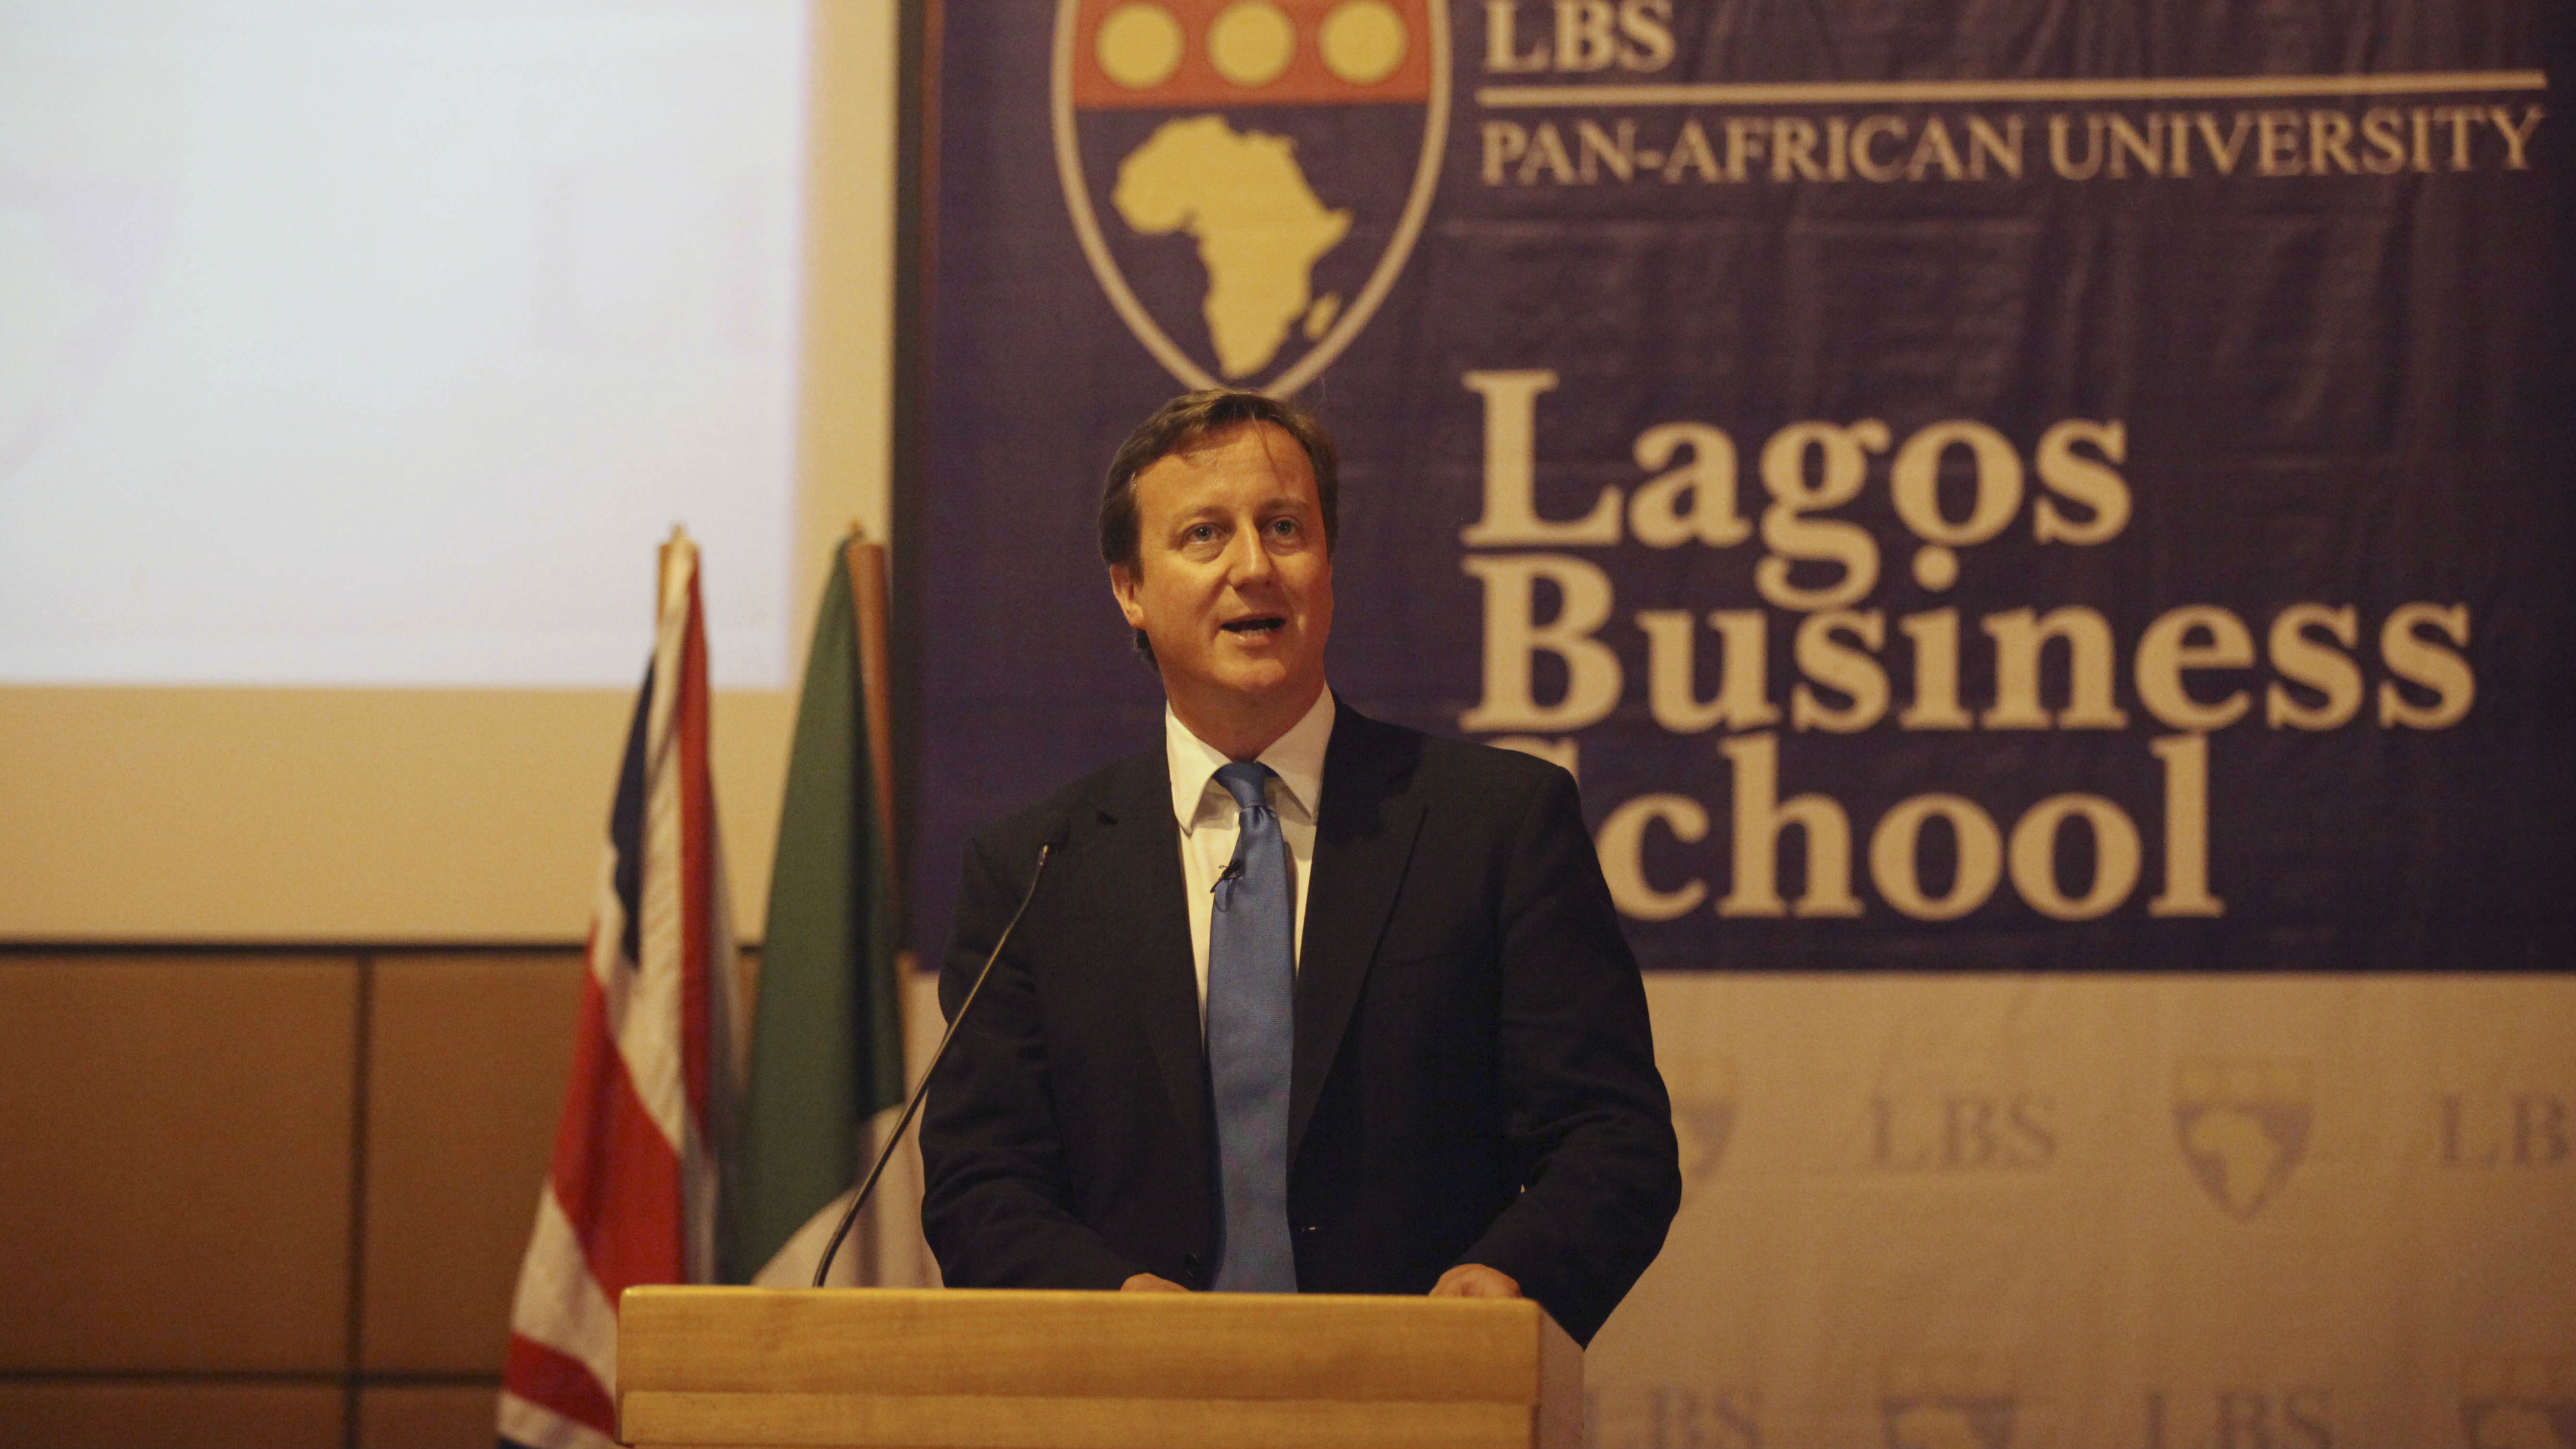 British Prime Minister David Cameron, speaks at the Pan African University Business School in Lagos, Nigeria, Tuesday, July 19, 2011. Cameron was flying home early from an African trade mission to concentrate on the escalating crisis in London over phone hacking and police links with the media. (AP Photo/Sunday Alamba)